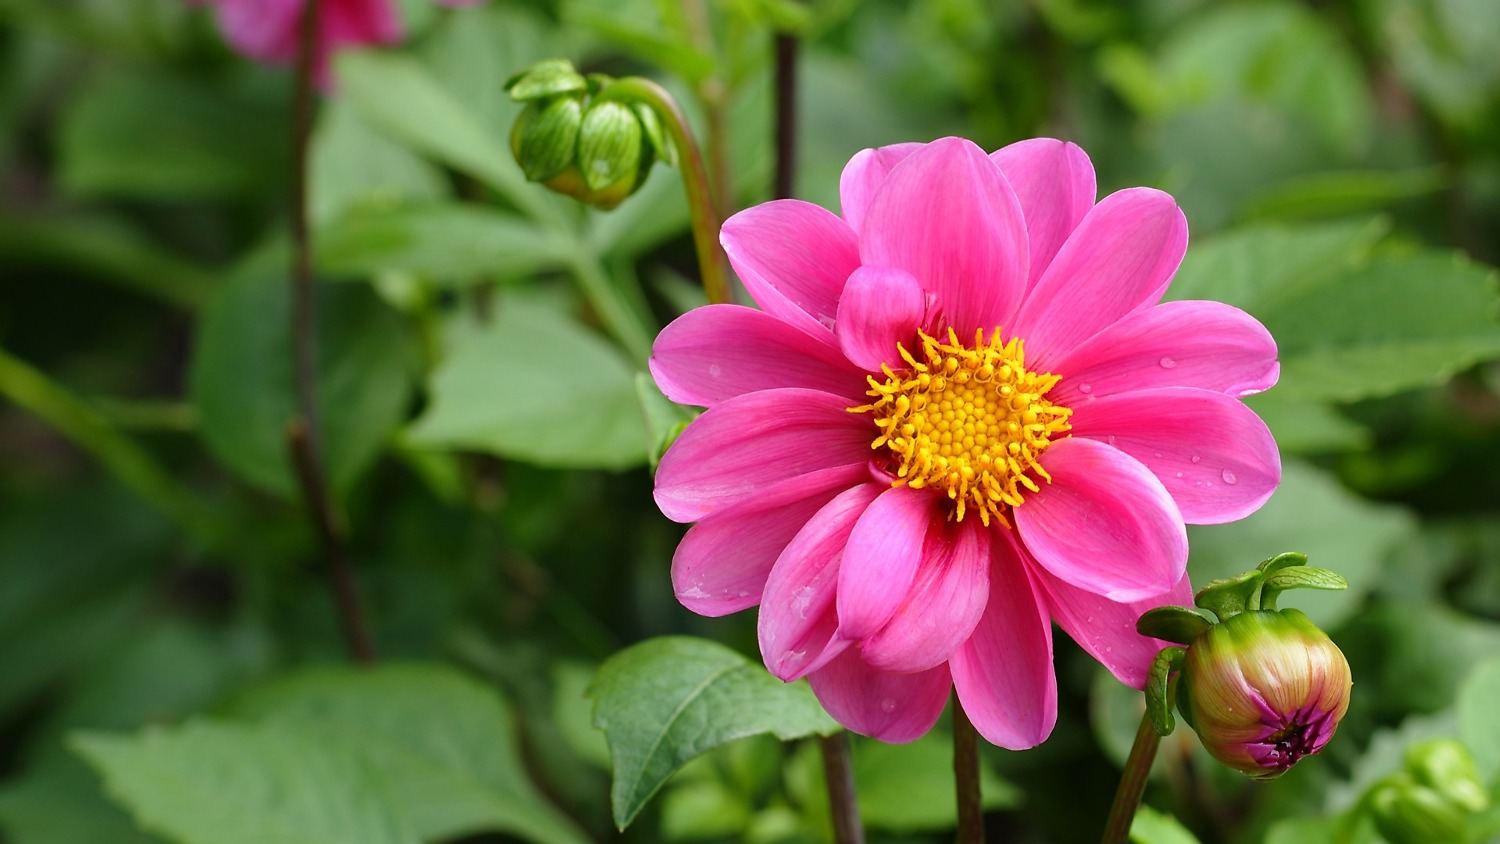 beautiful nature flower hd wallpaper flowers and natures on Rediff 1500x844